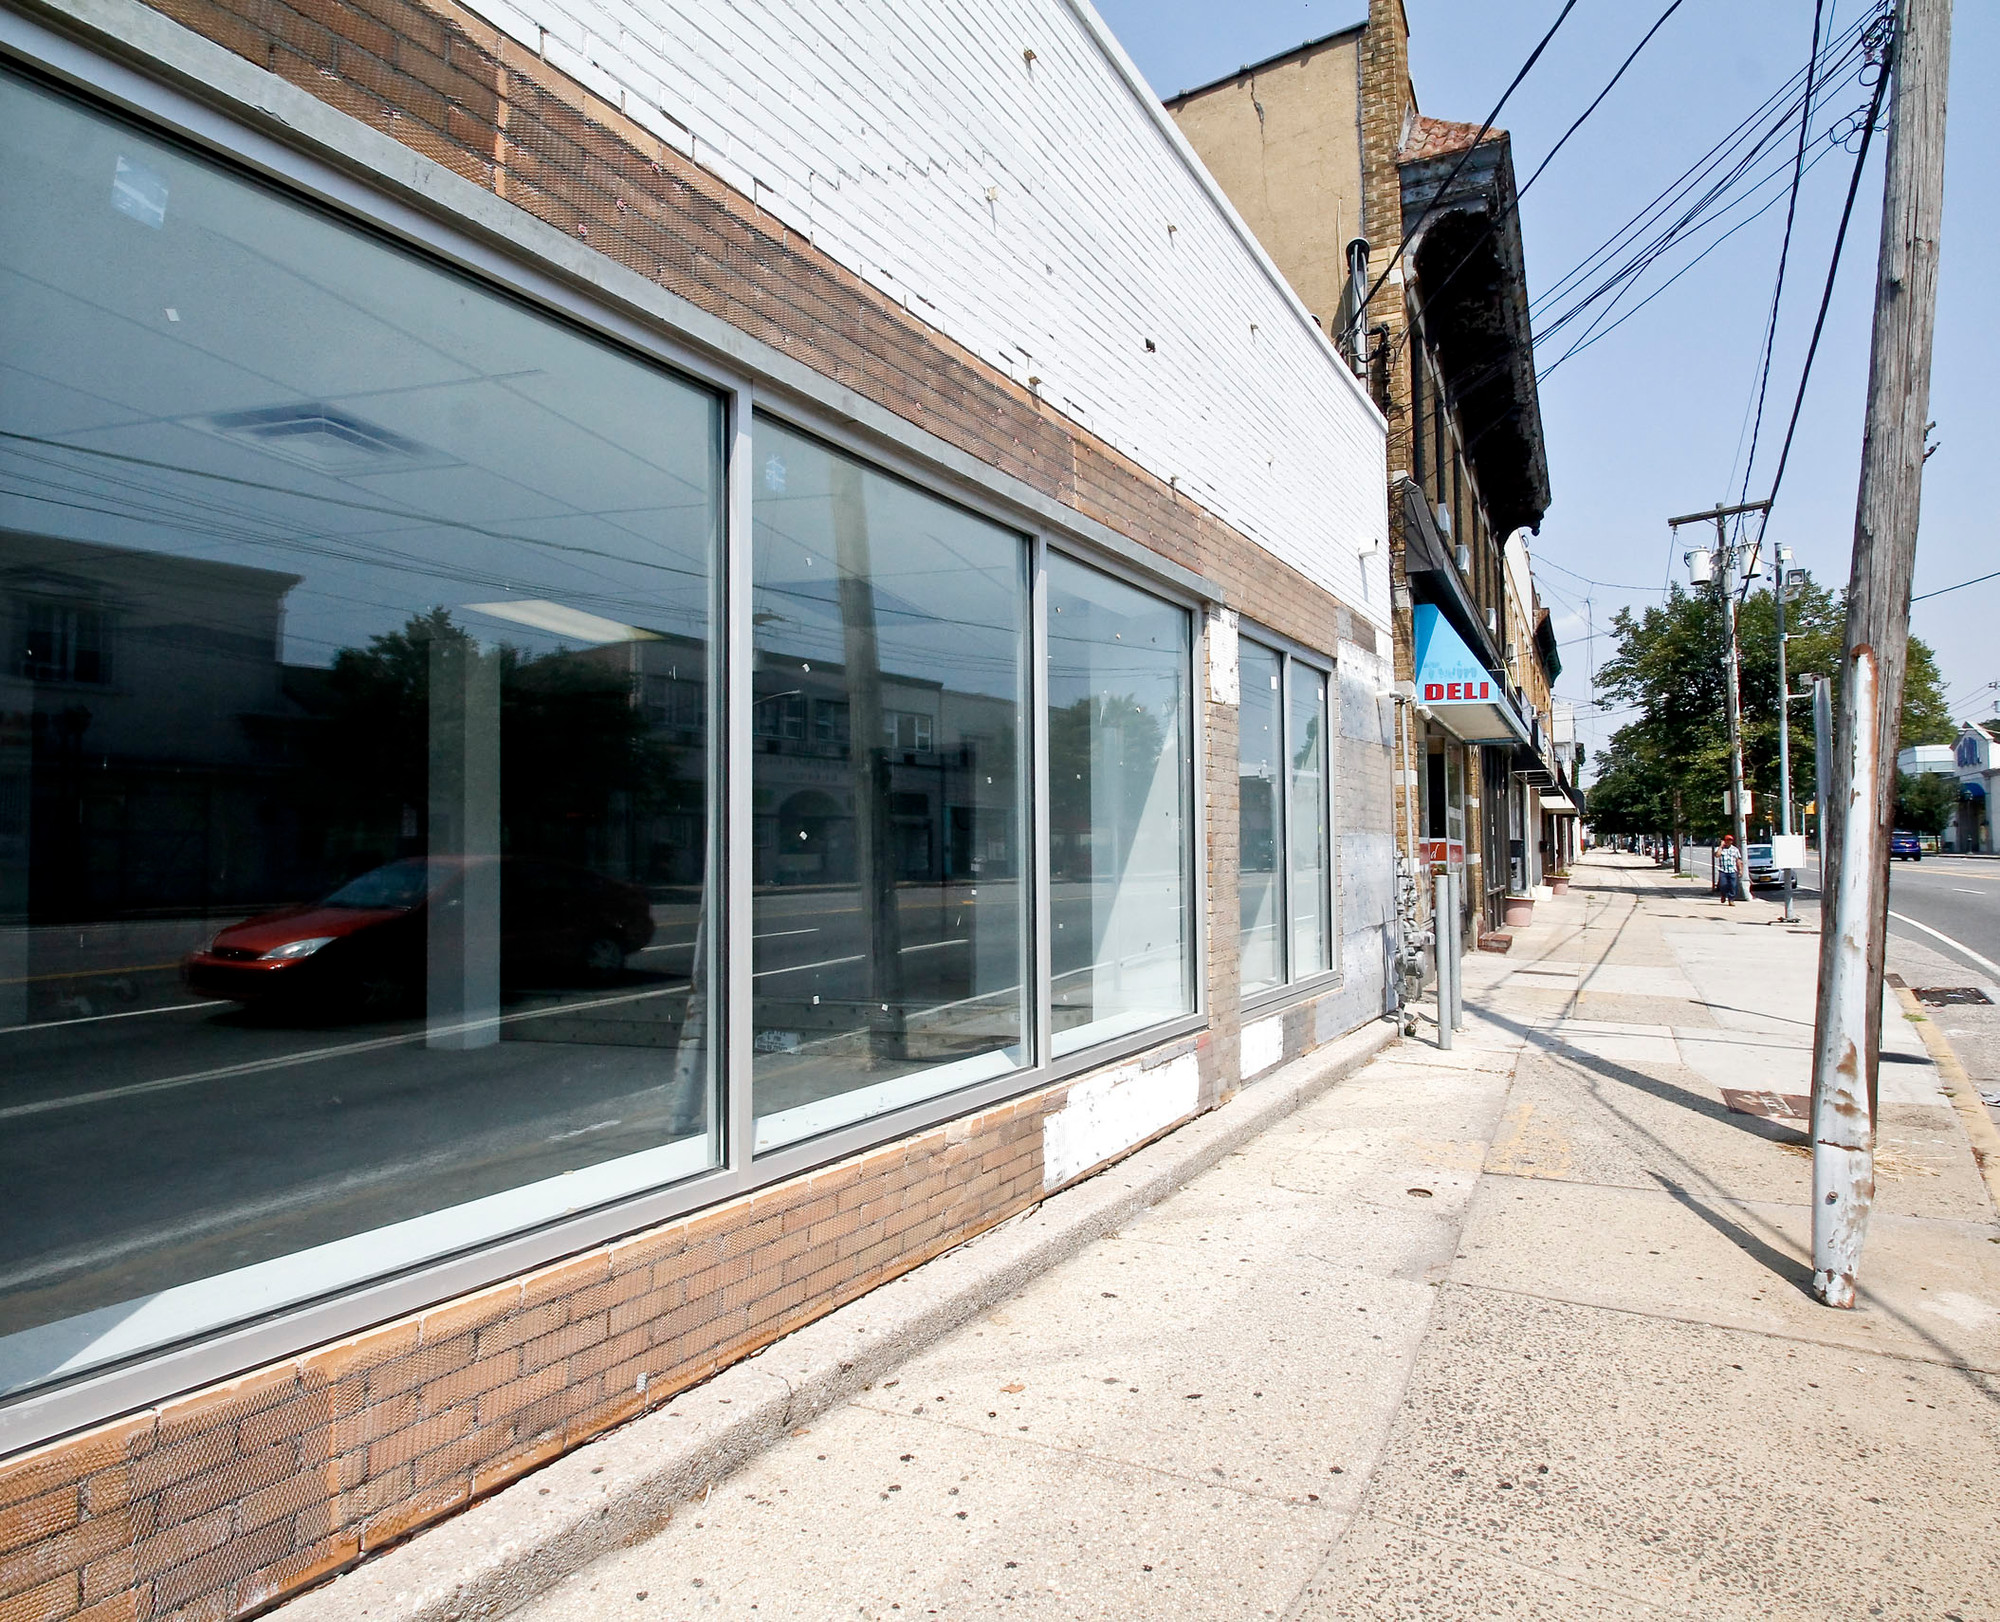 Many storefronts on busy Grand Avenue at Merrick Road remain empty while planners search for a developer to rehabilitate the site.